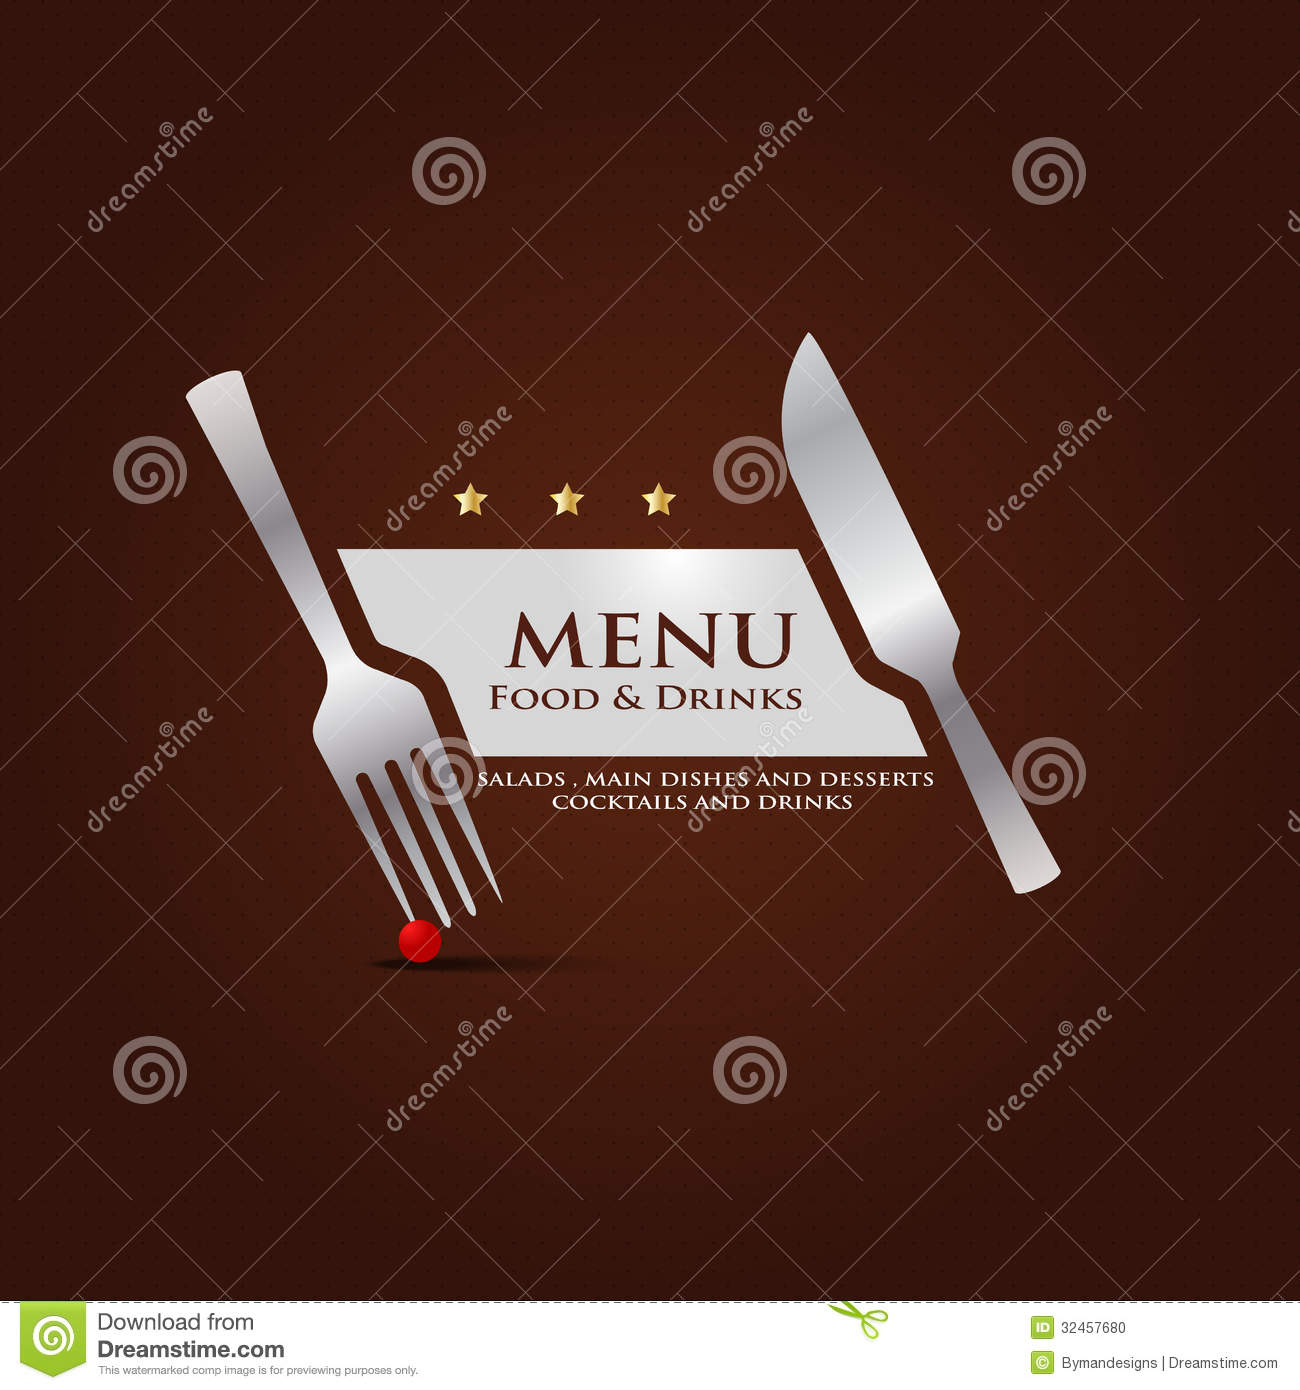 Favori Restaurant Menu Cover Design Stock Vector - Image: 32457680 PS27